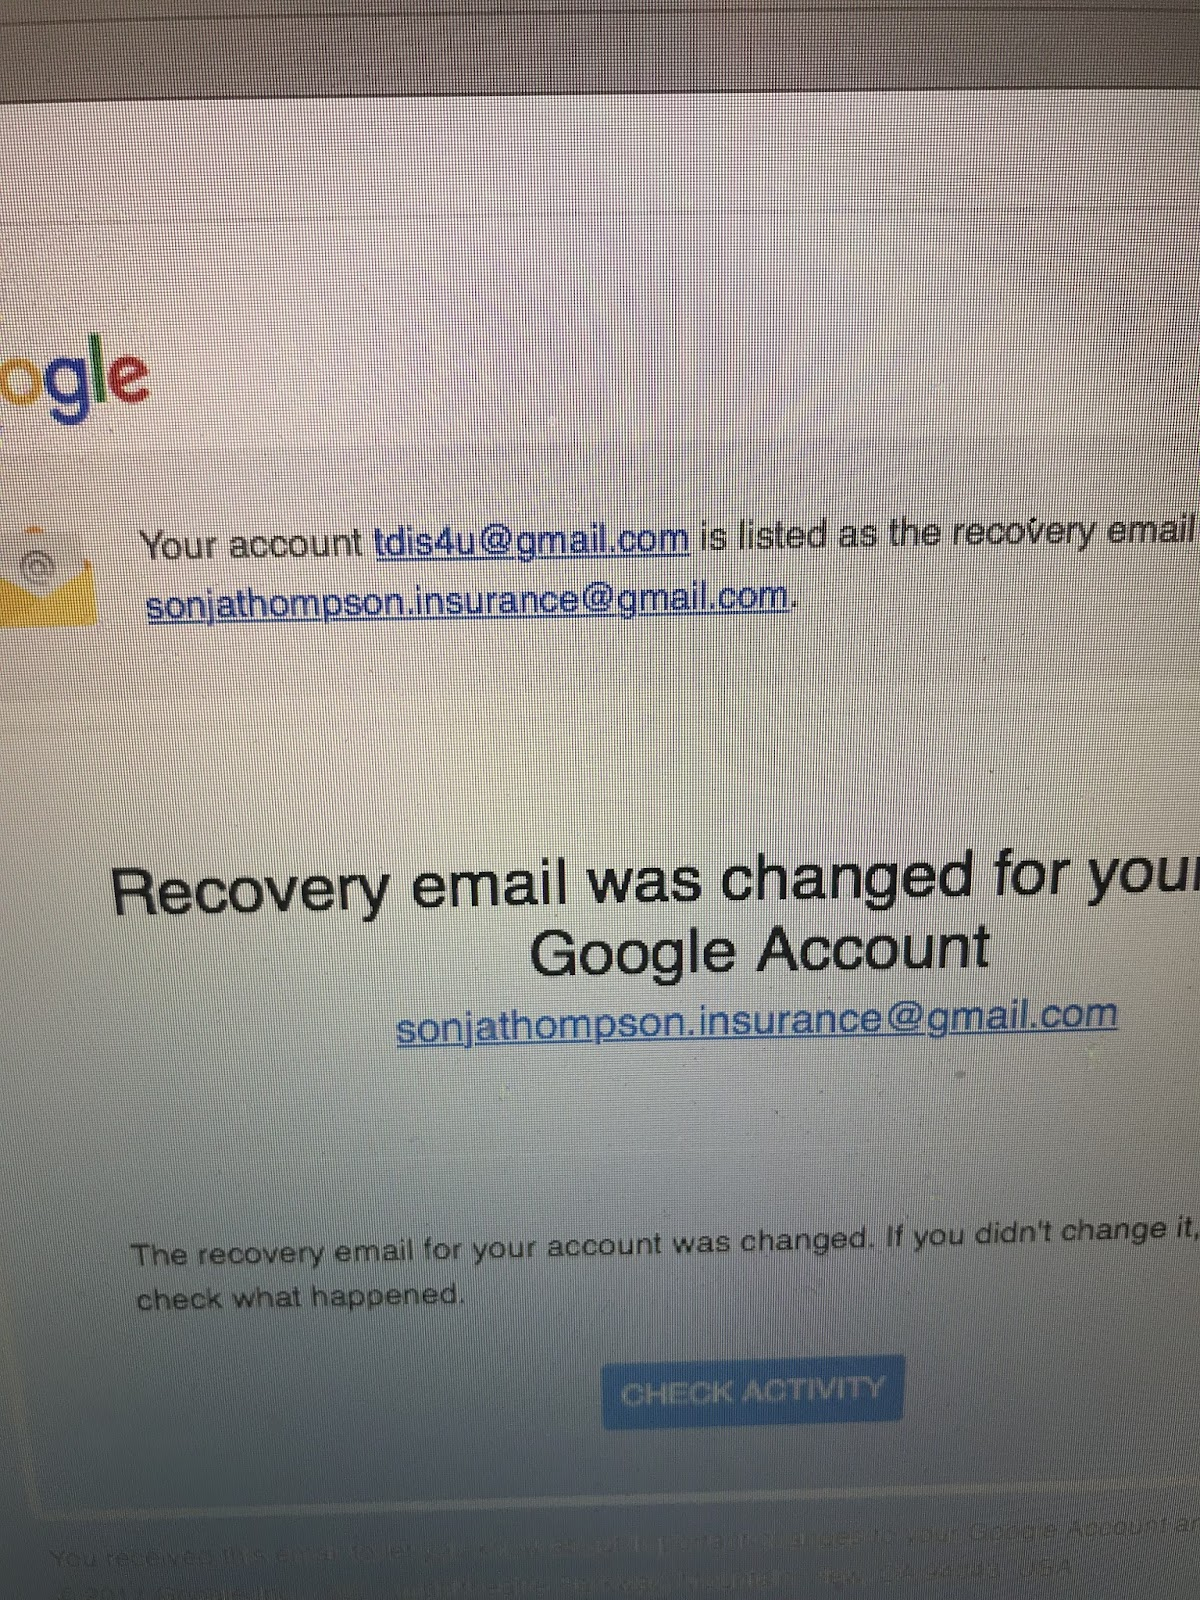 Gmail Account Hacked-Recovery Email/Phone Changed - Gmail Help